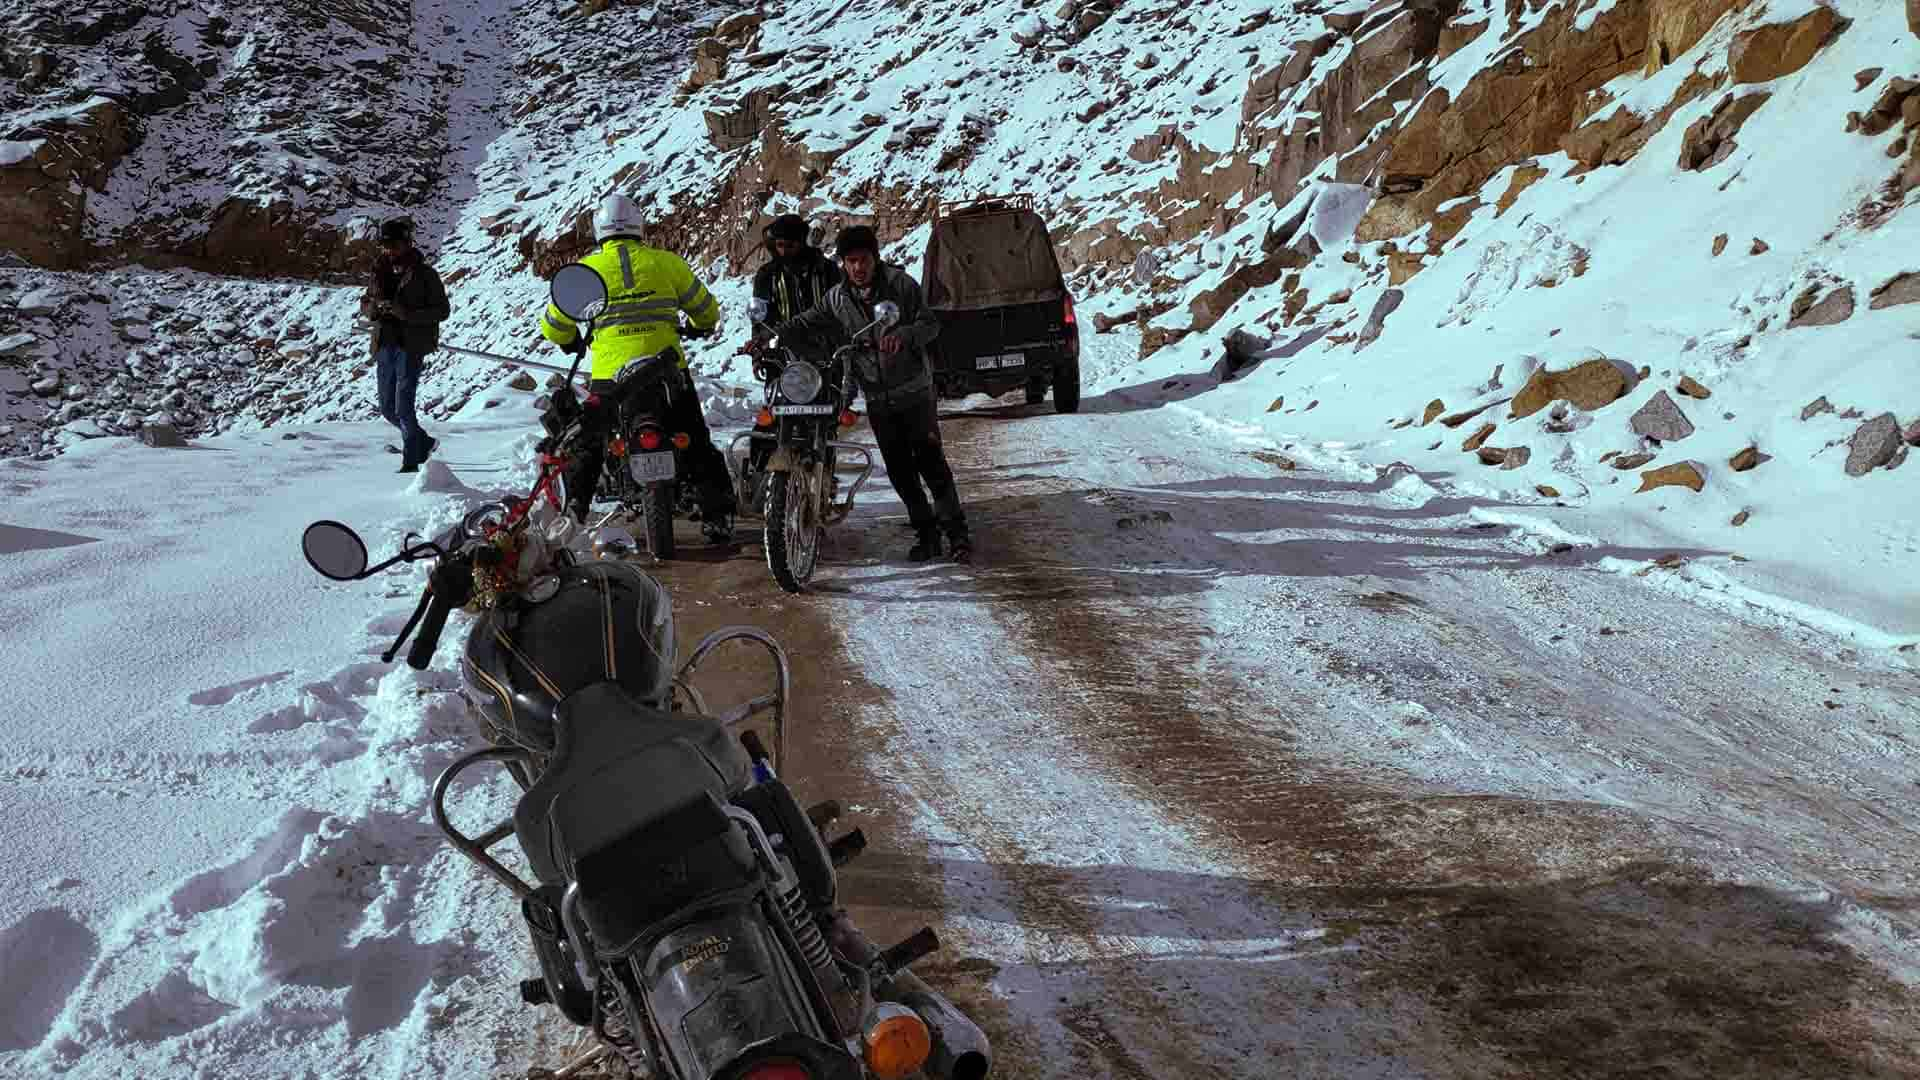 Motorcycle-tours-in-himalayas-india-ladakh-tours